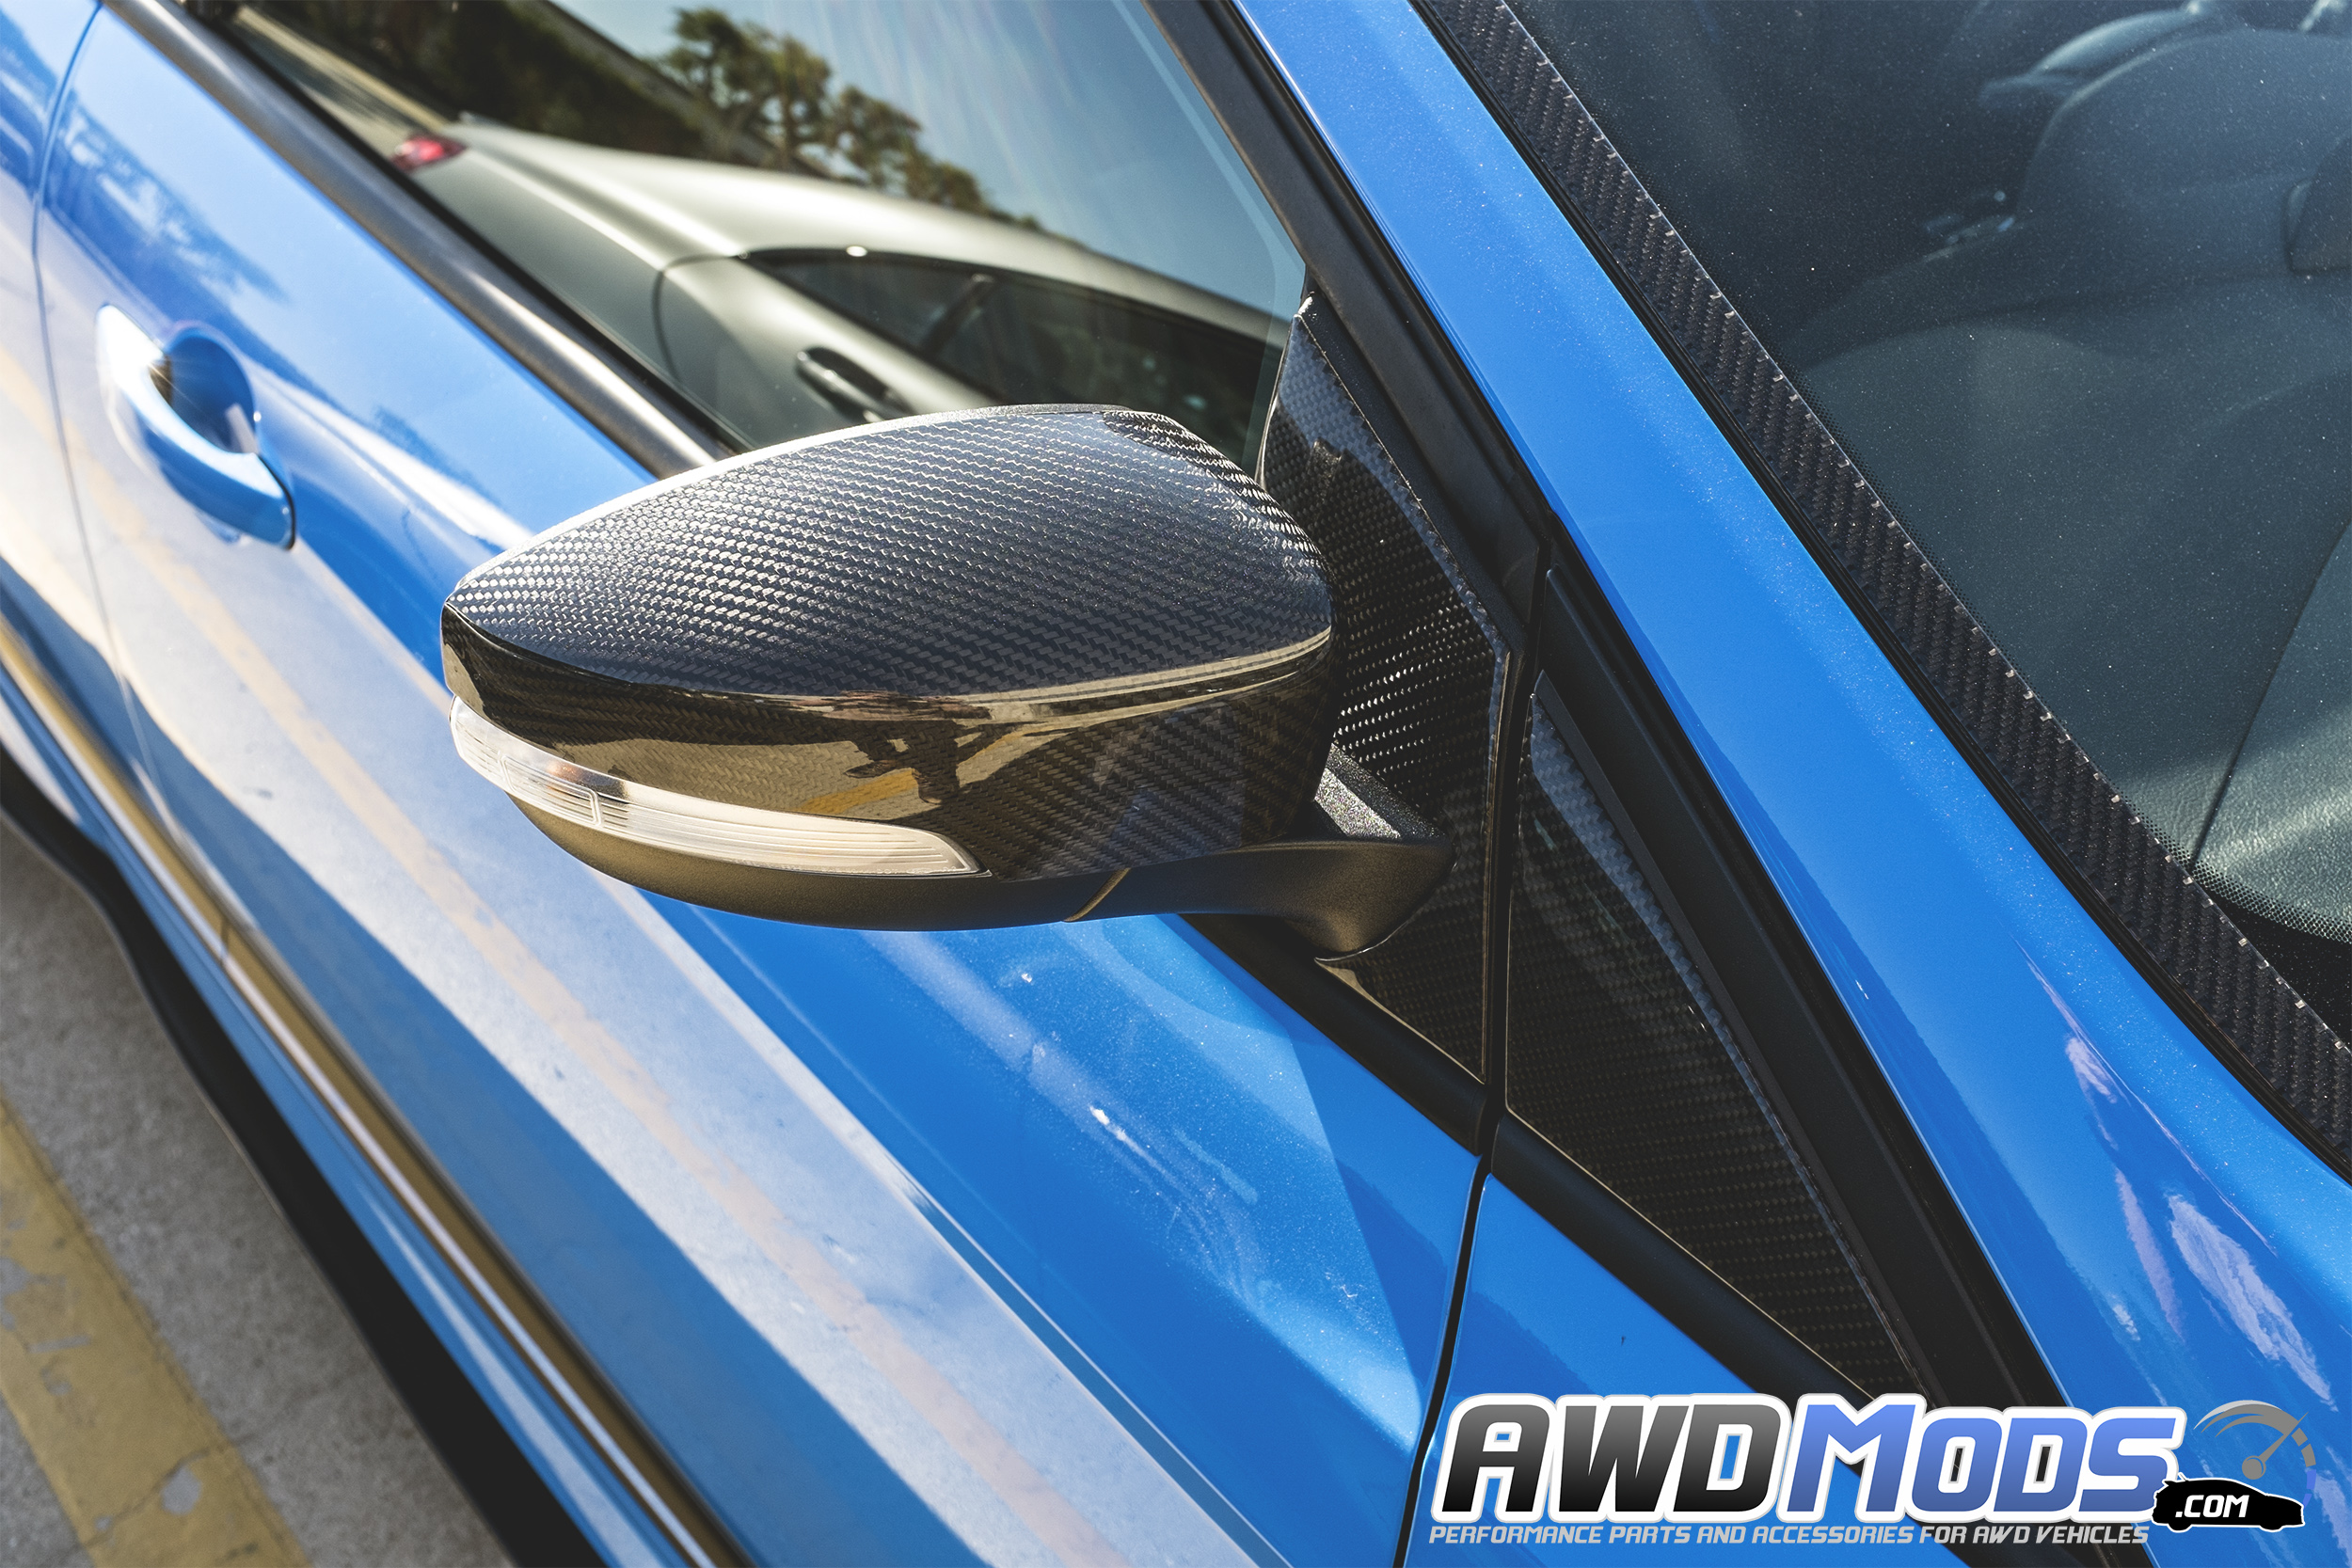 Ford Focus Rs St Carbon Fiber Side View Mirror Covers By Cal Pony Cars Fuse Box Cover For The